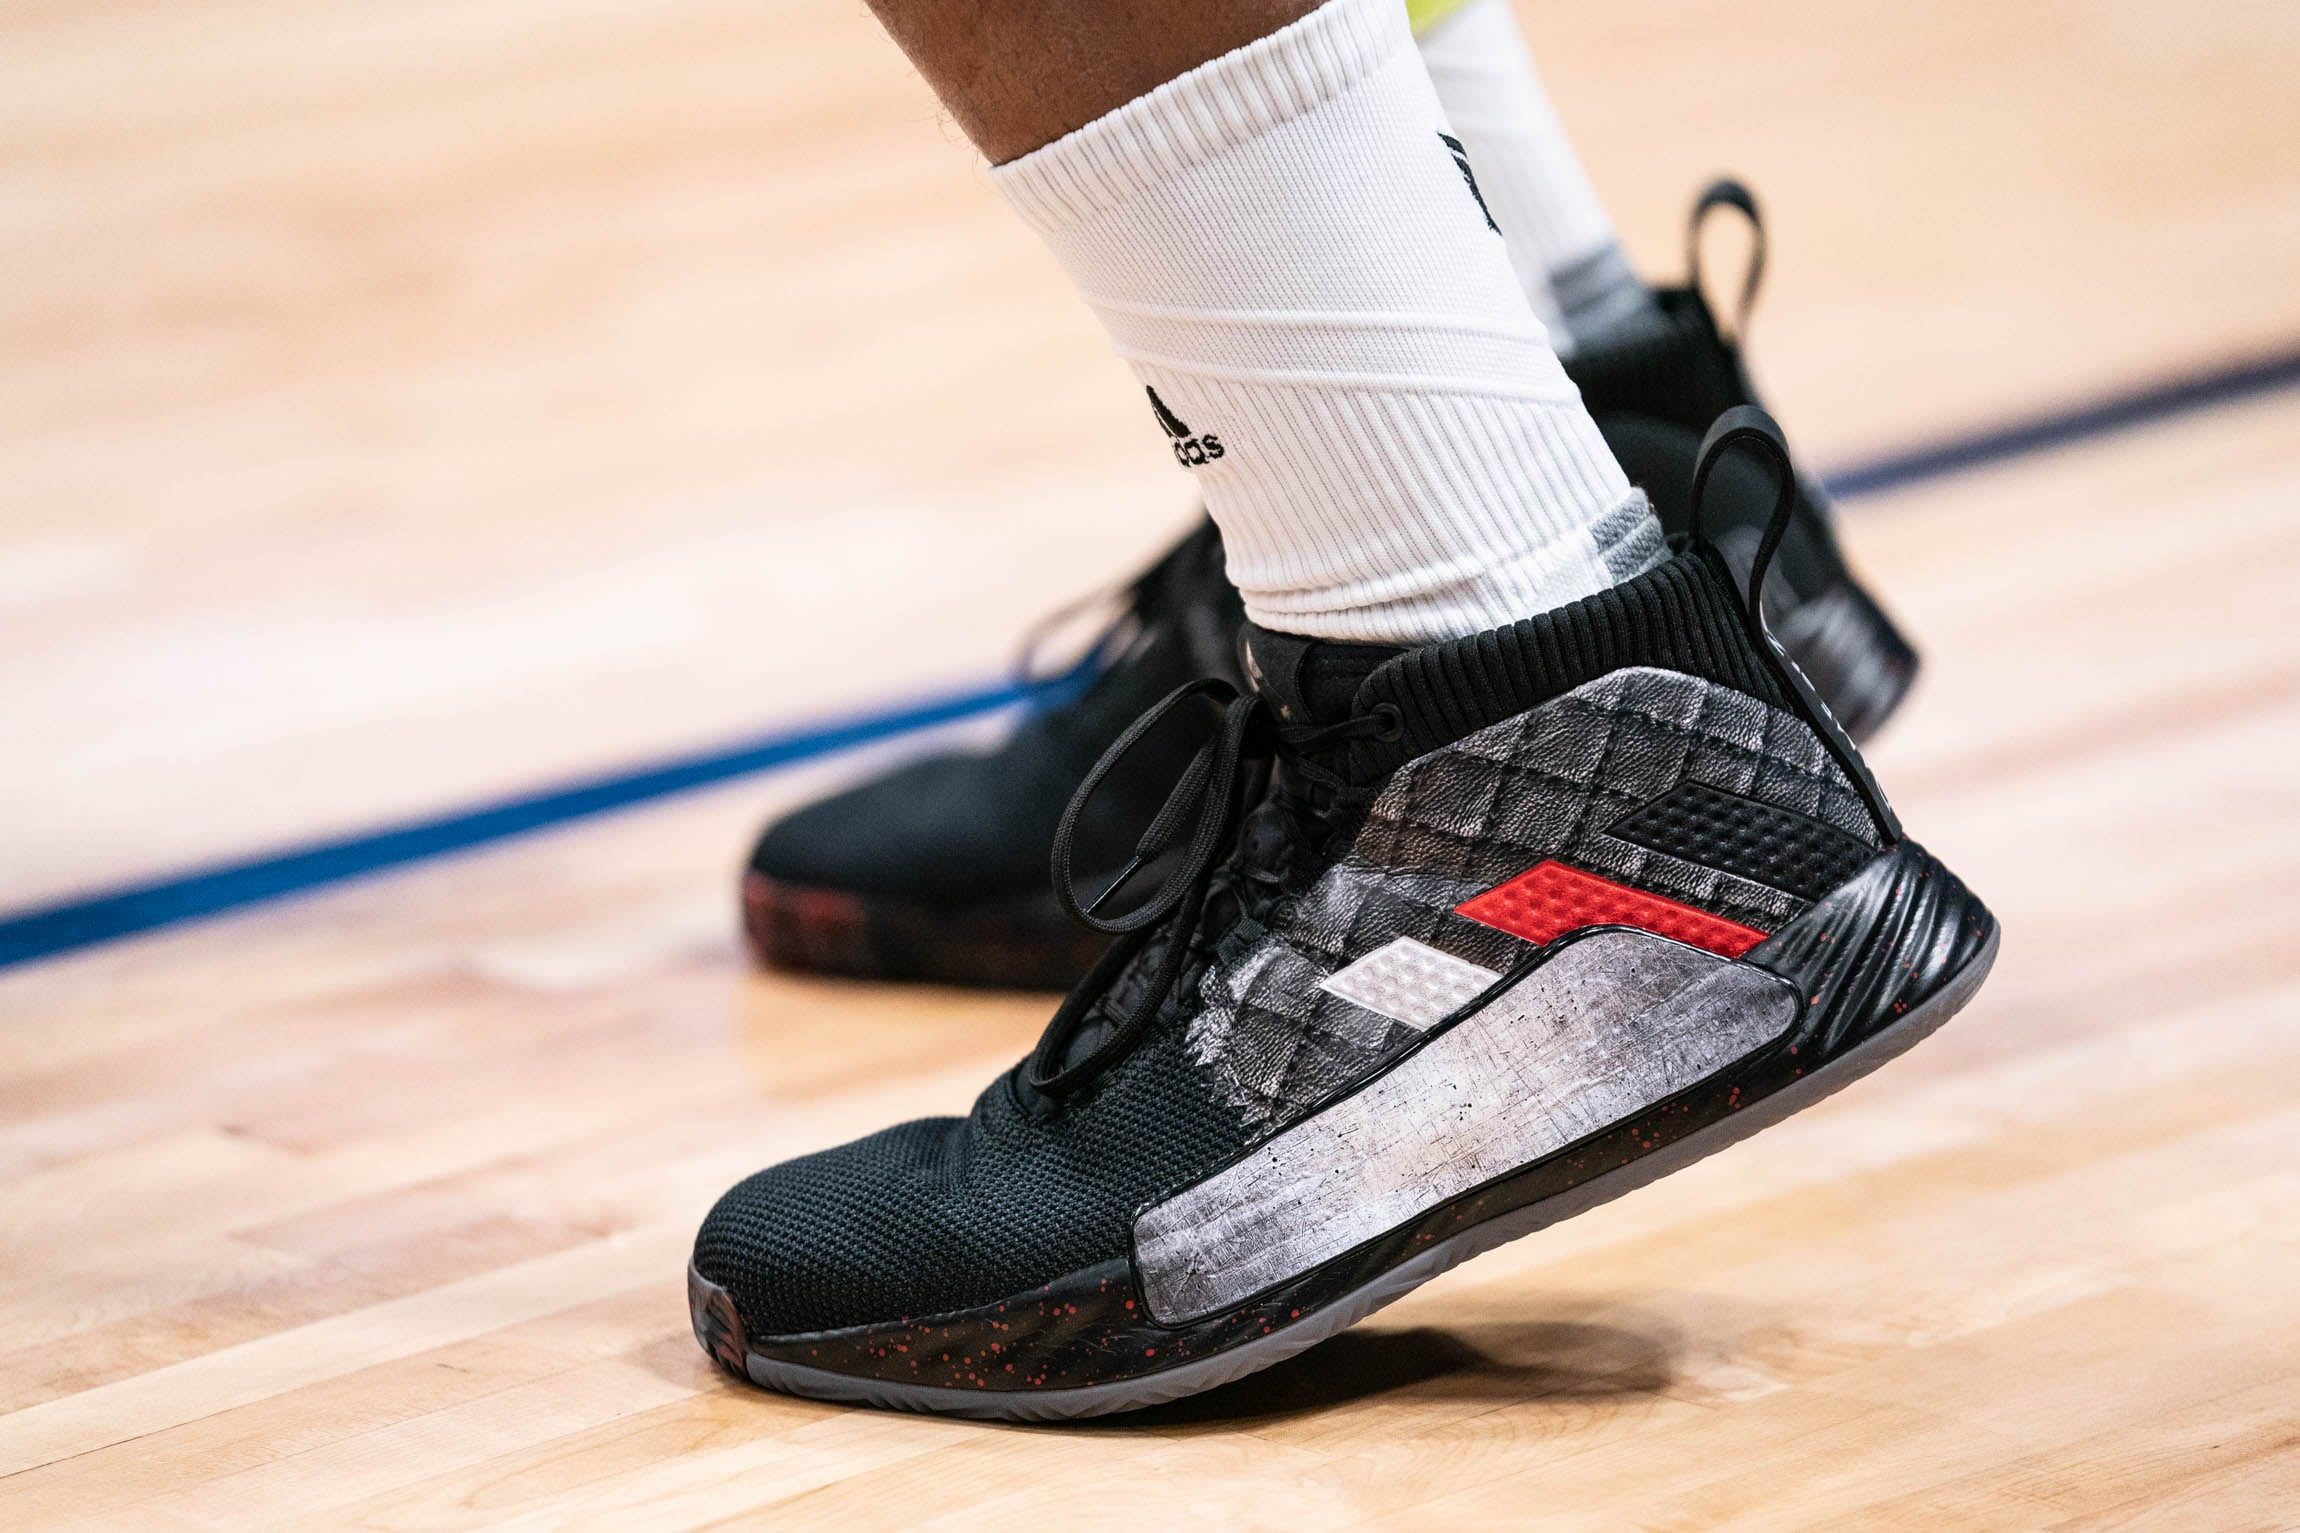 c2ef924a5c33 Photos » Custom Bleacher Report  Dame Of Thrones  Adidas Dame 5s ...